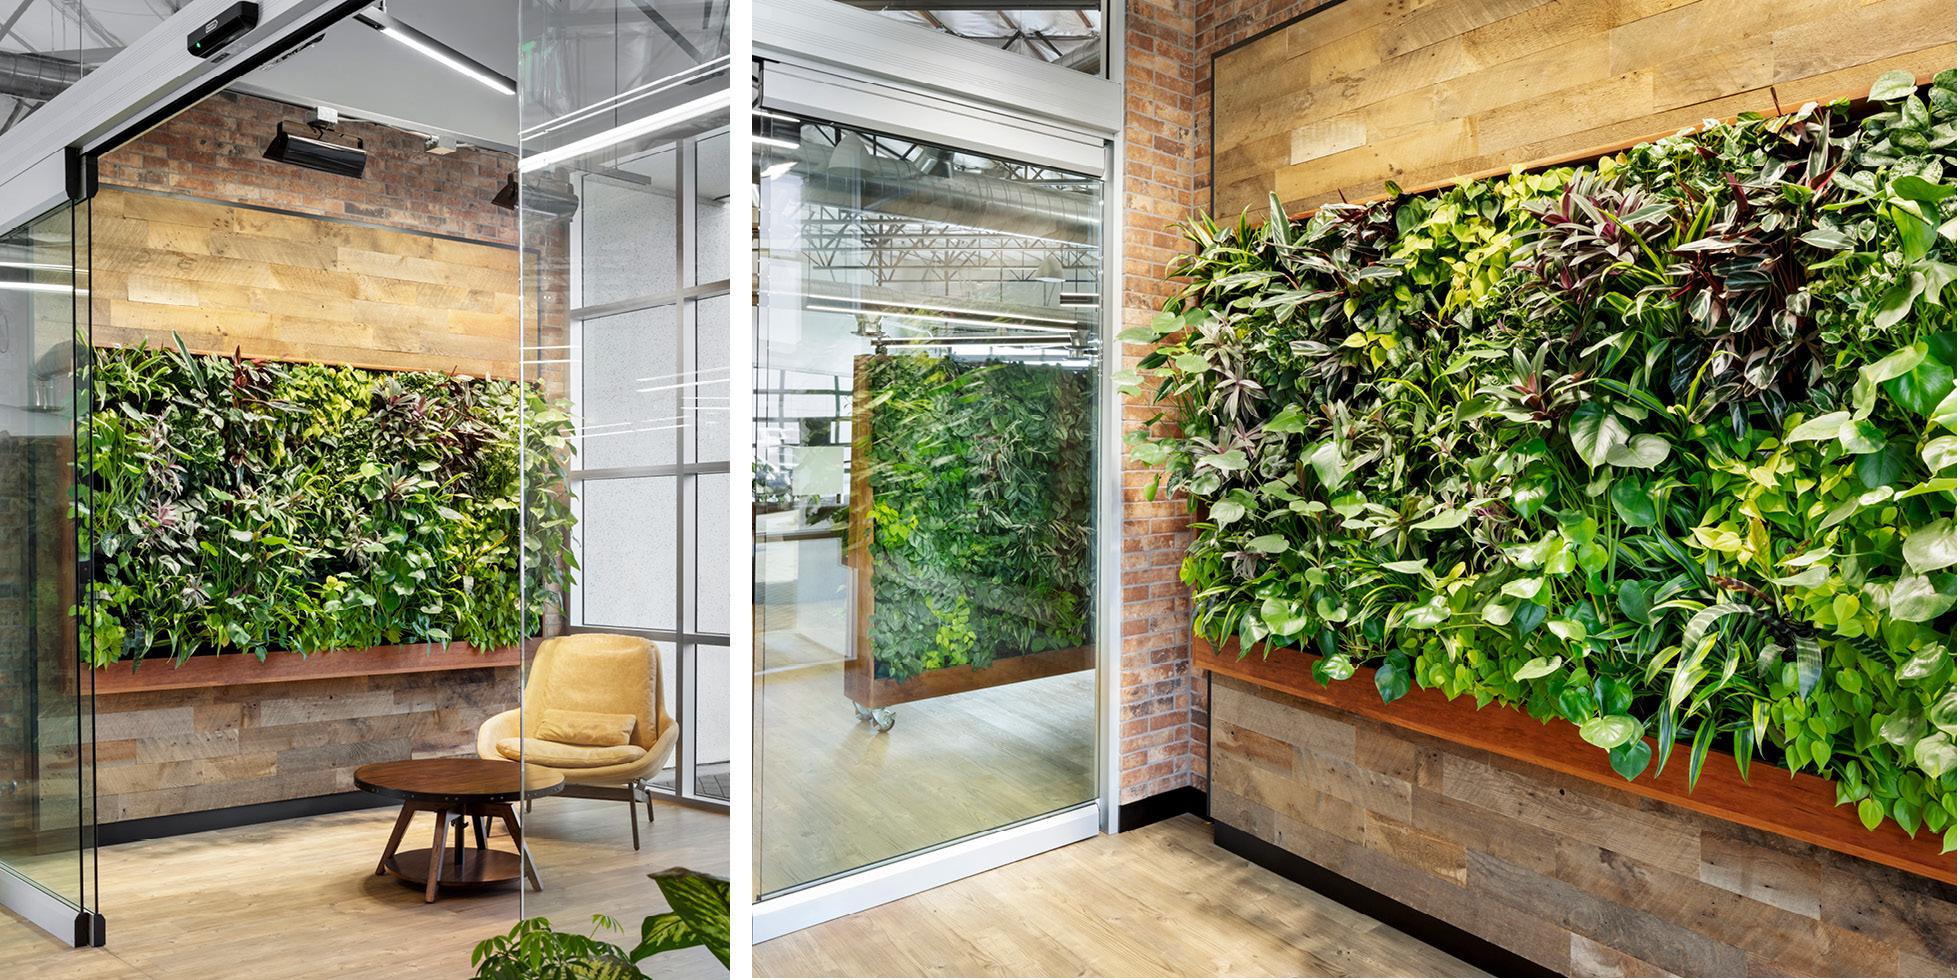 Smiths Group Service Corp Living Wall by Habitat Horticulture - View 5